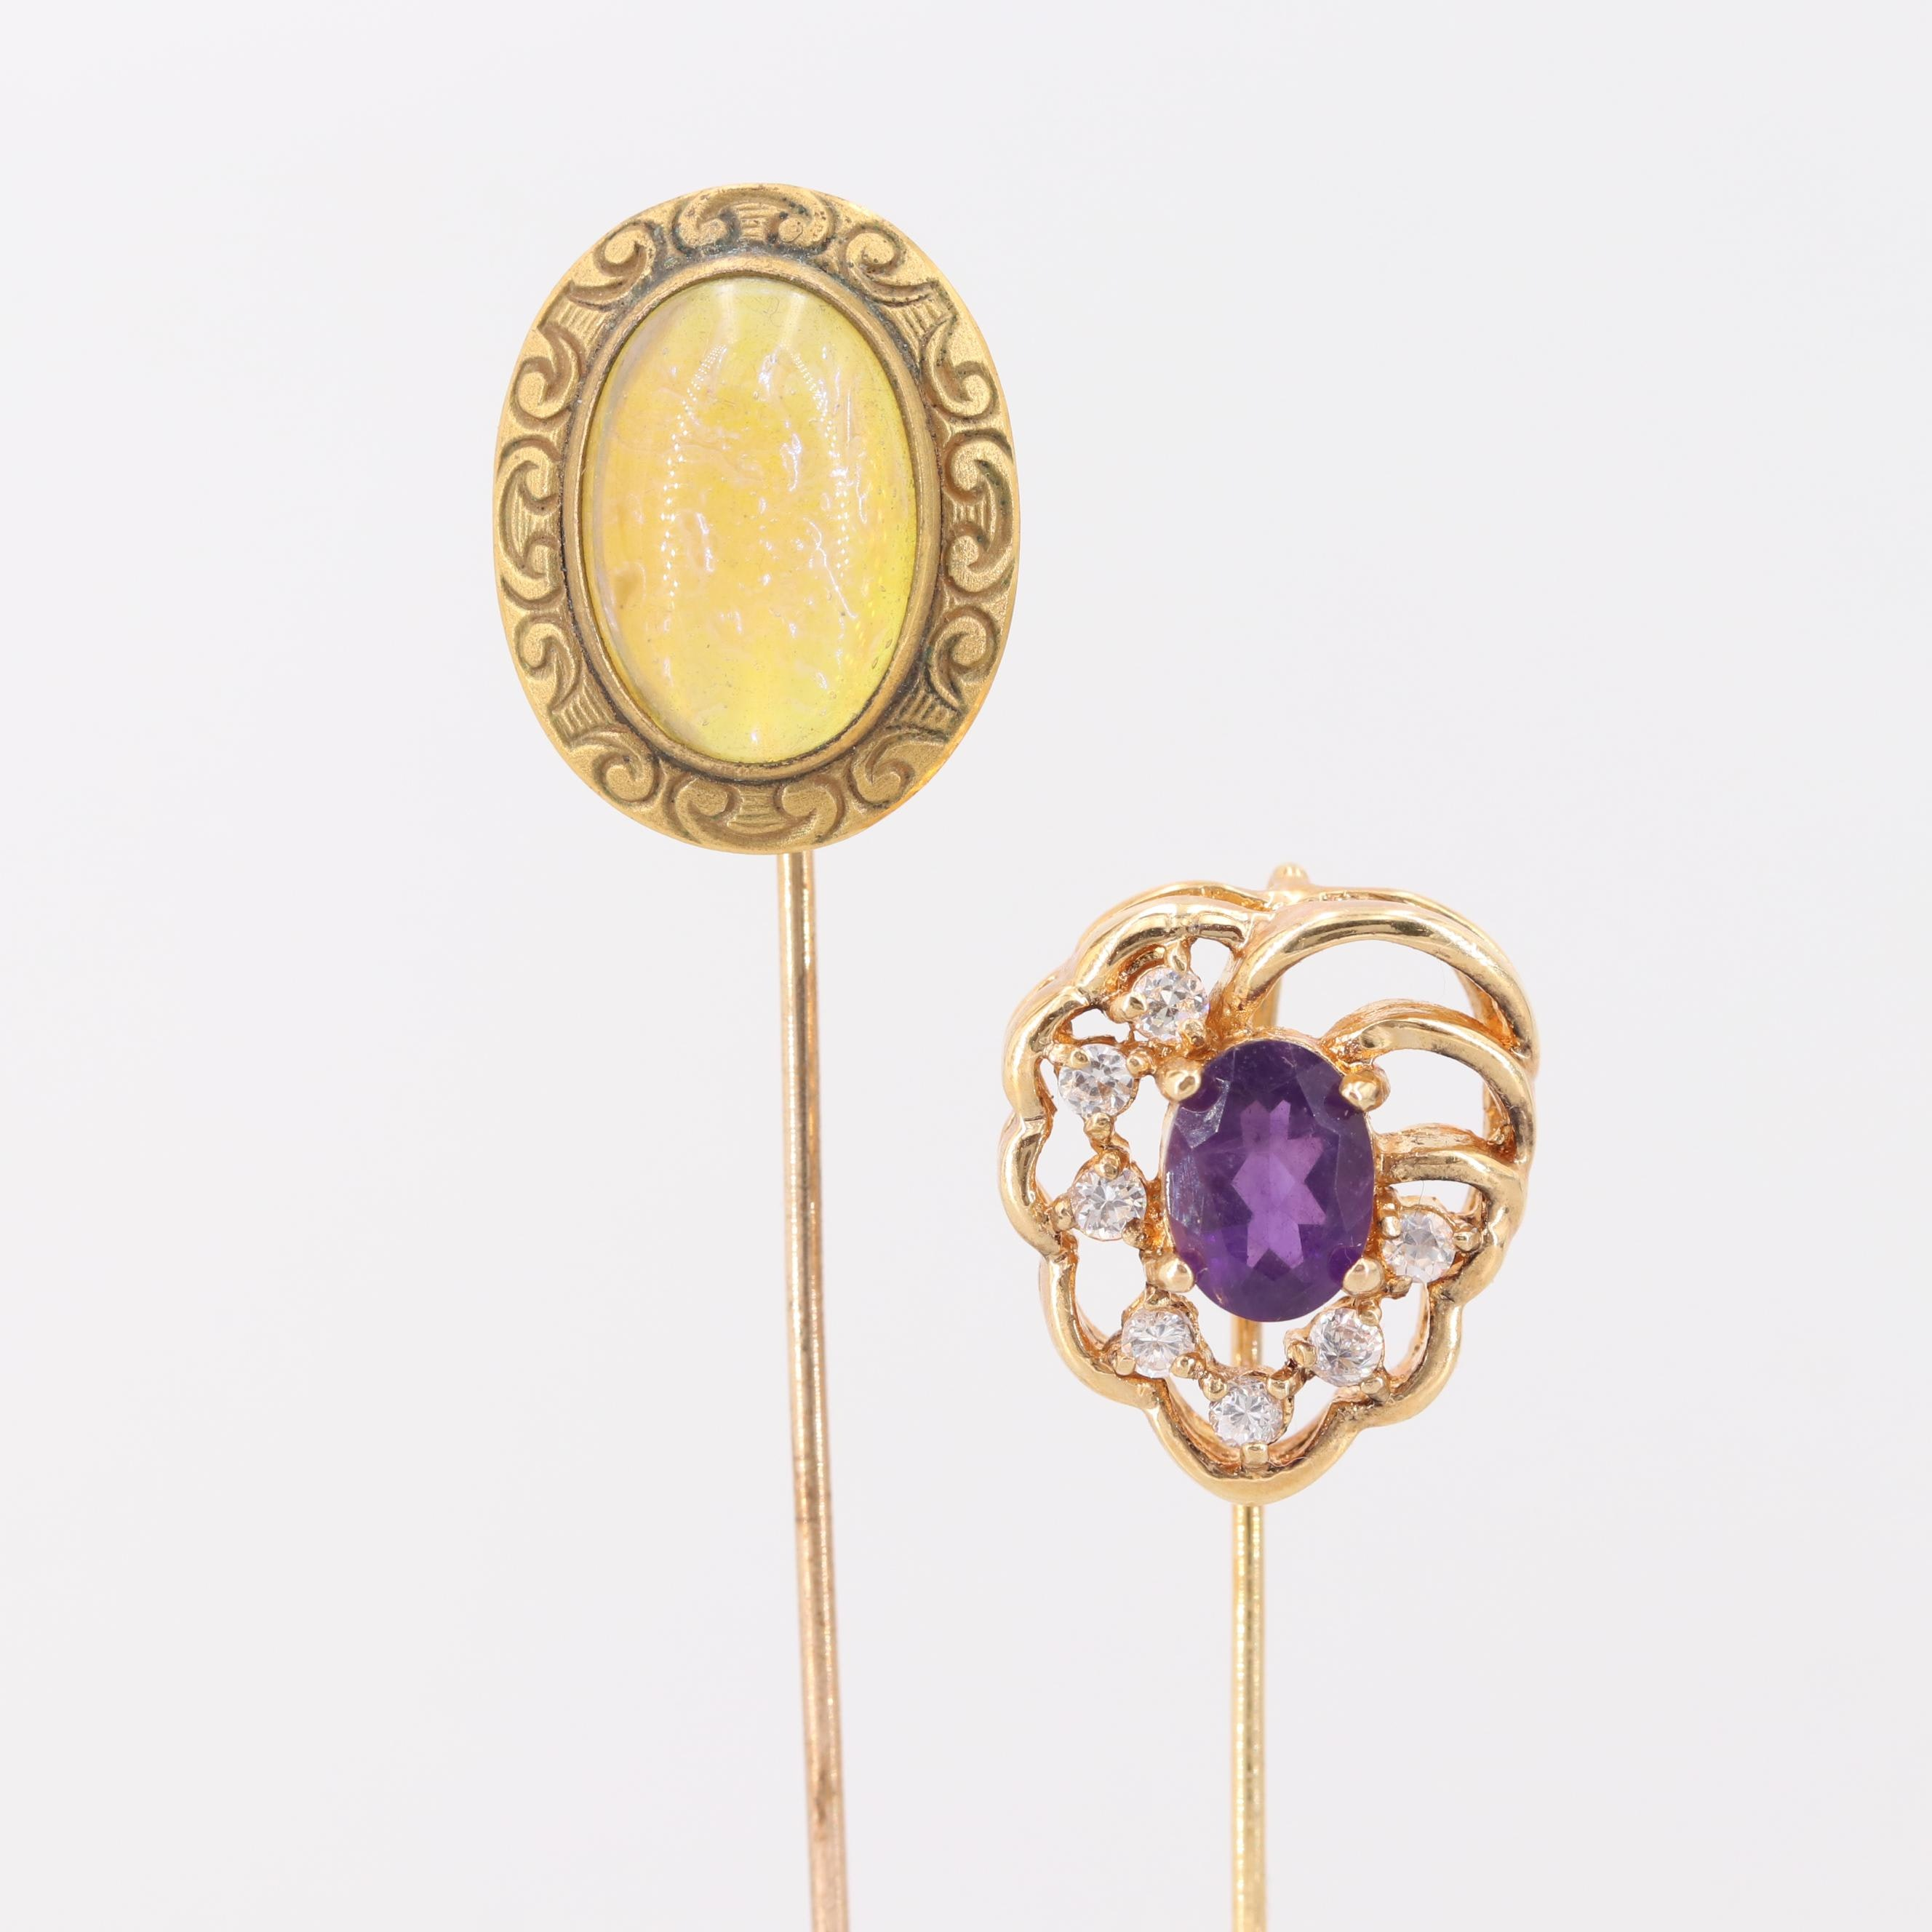 Vintage Gold Tone Amethyst, Cubic Zirconia, and Foilback Glass Stick Pins